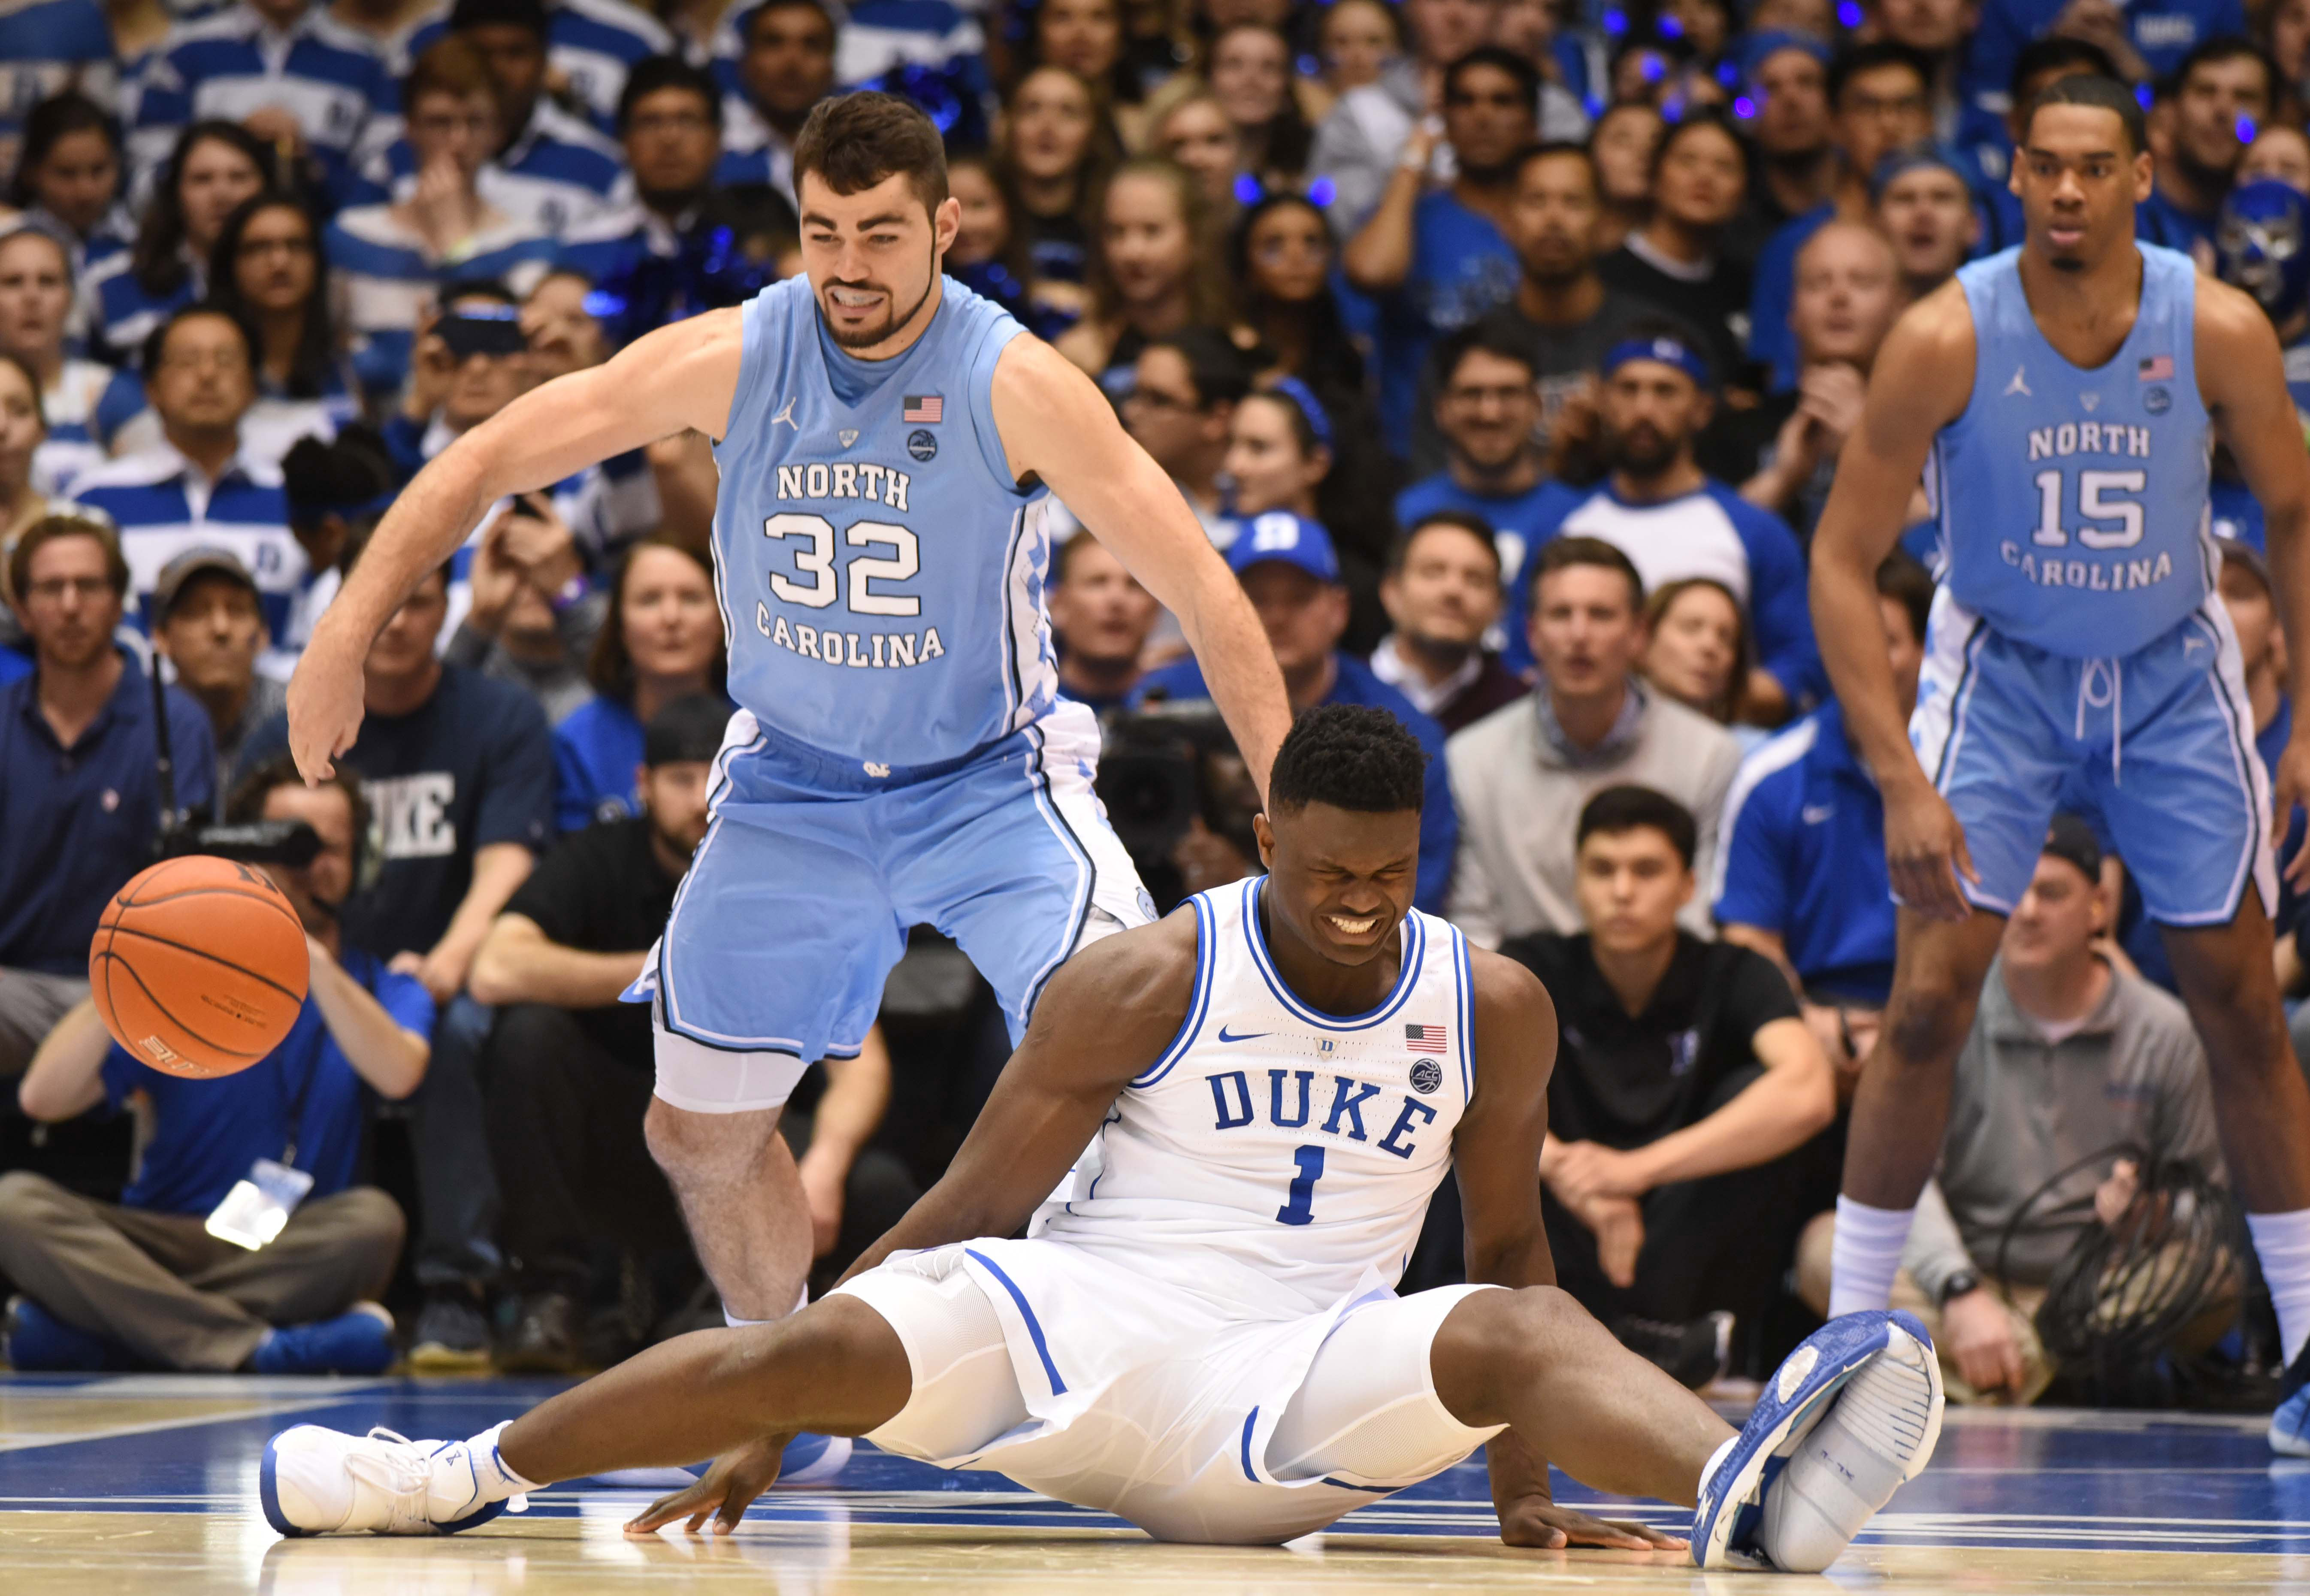 f0a4b1df0 Zion Williamson's first Duke-UNC game ends prematurely after knee injury